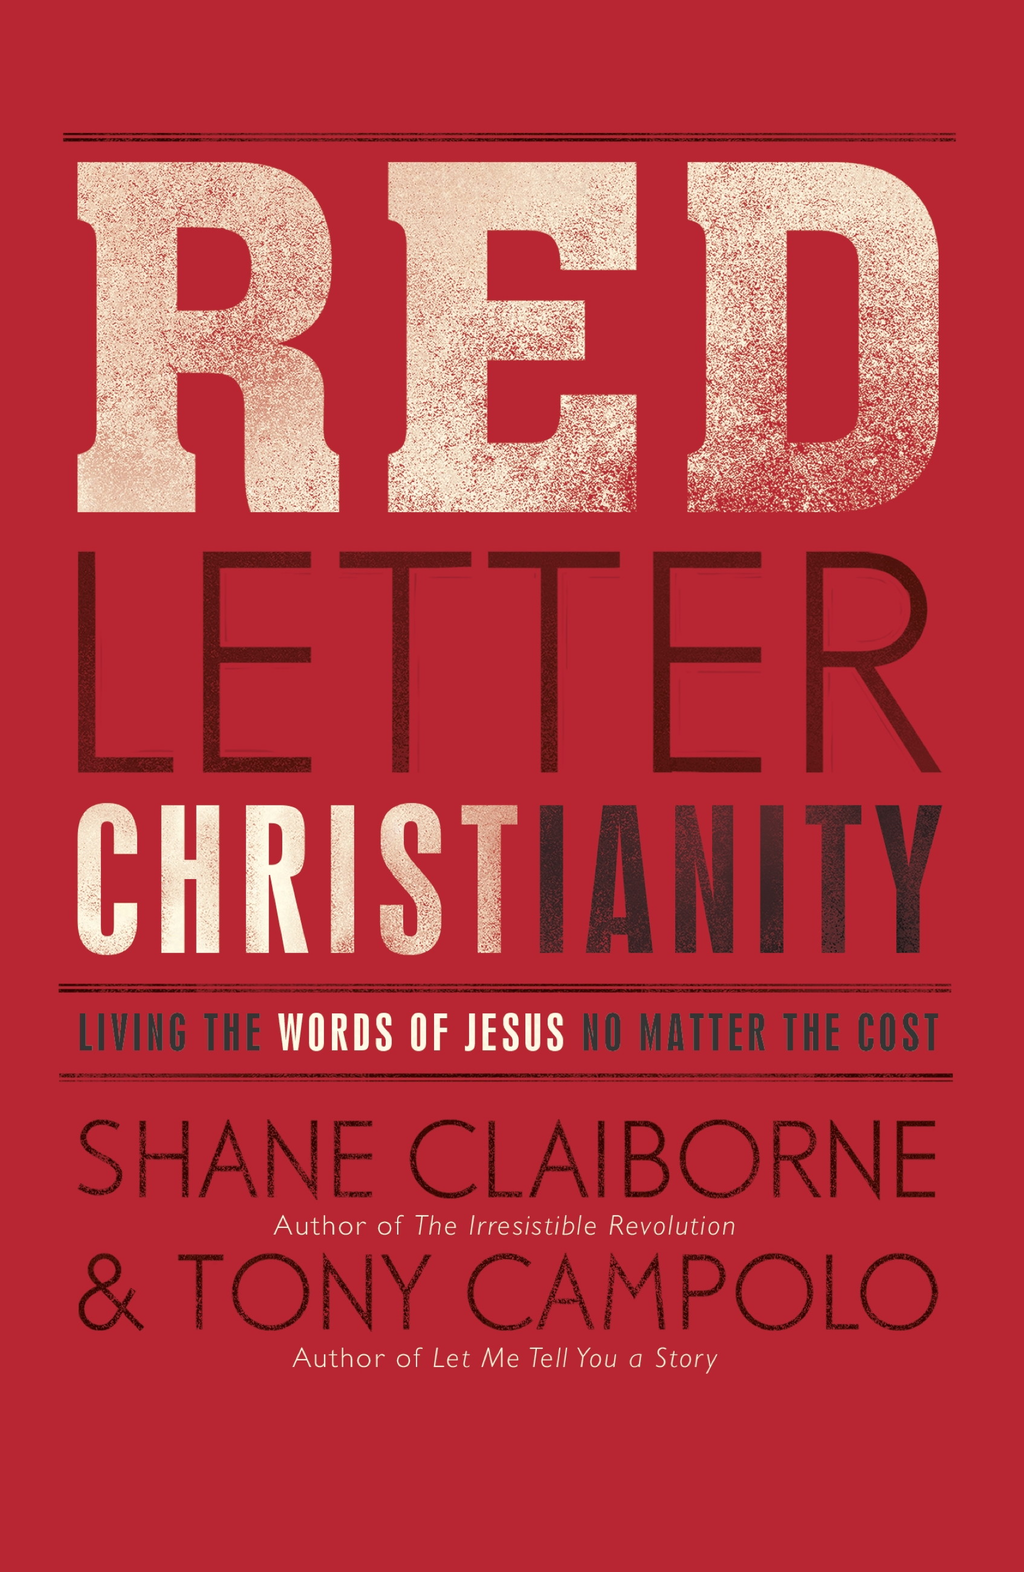 Red Letter Christianity Living the Words of Jesus No Matter the Cost